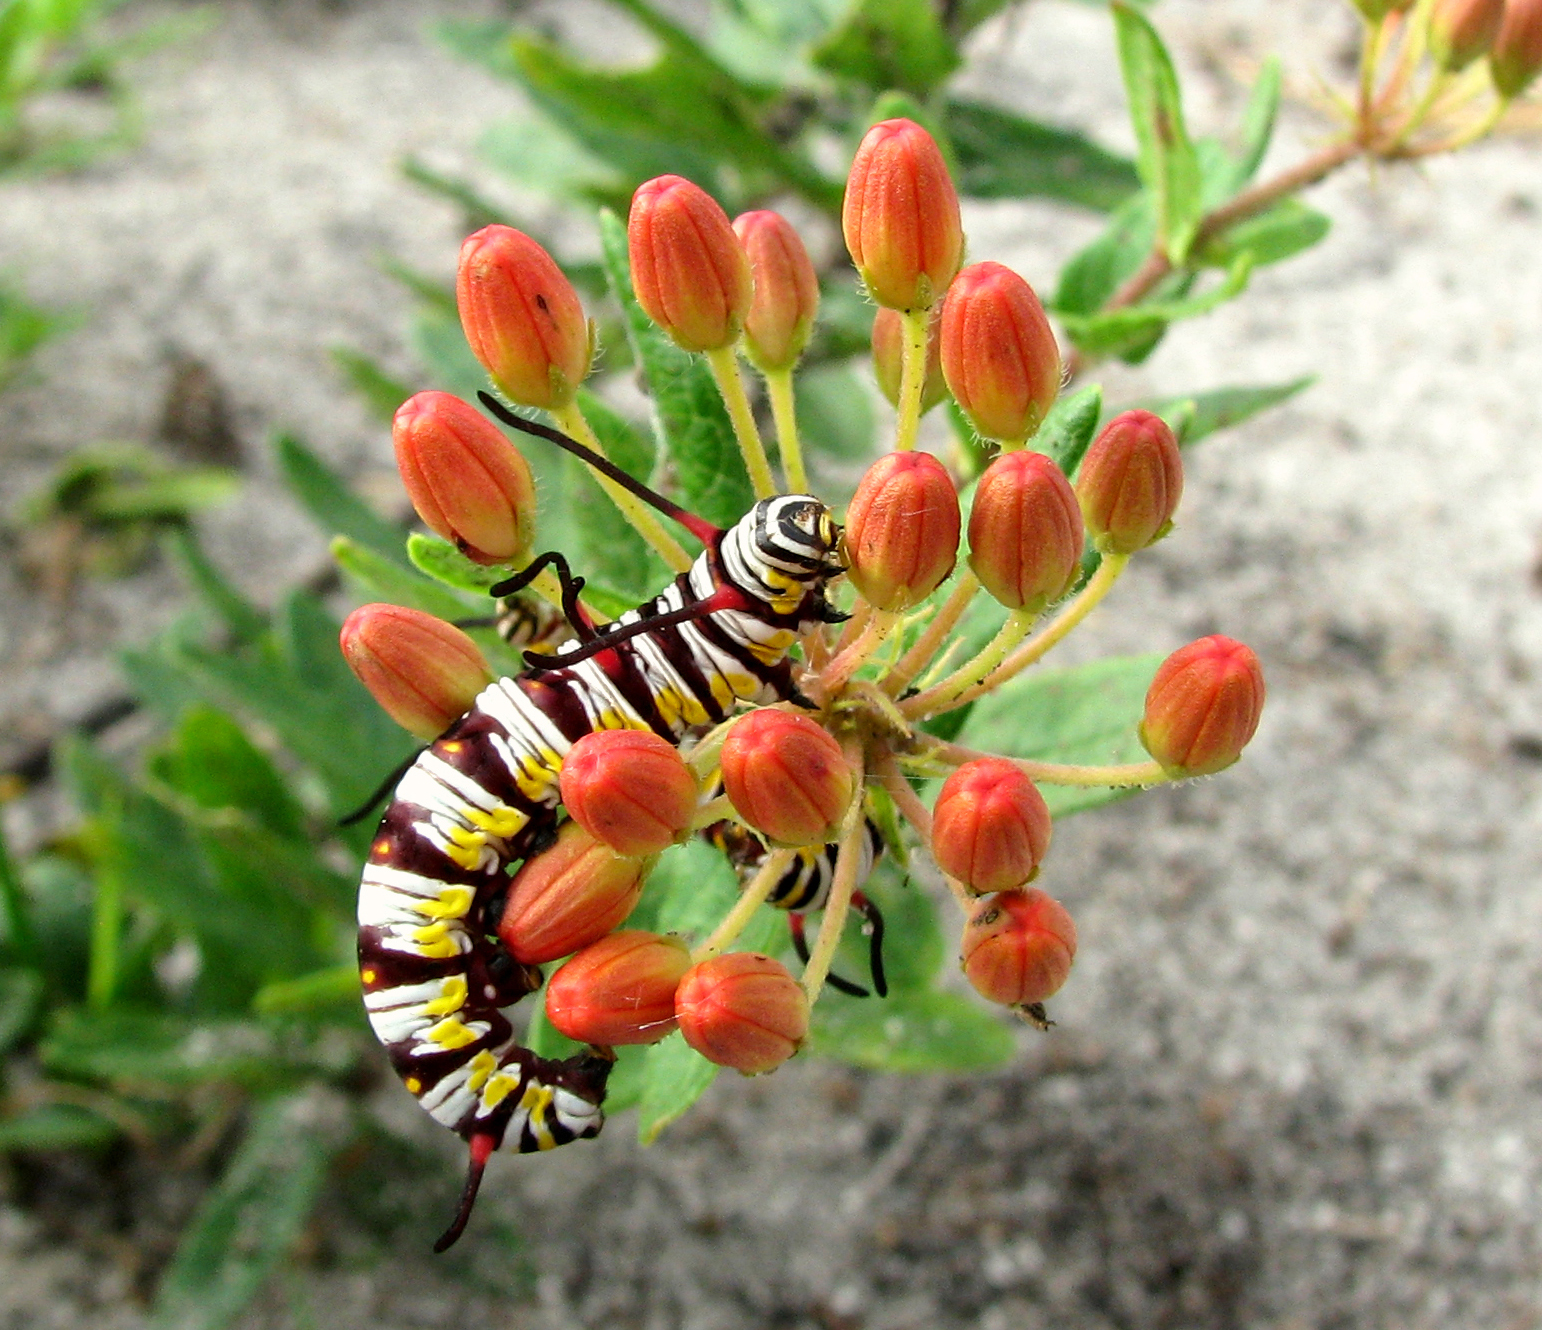 Plants Native To Hawaii: » Save Our Monarchs: Plant Native Milkweed